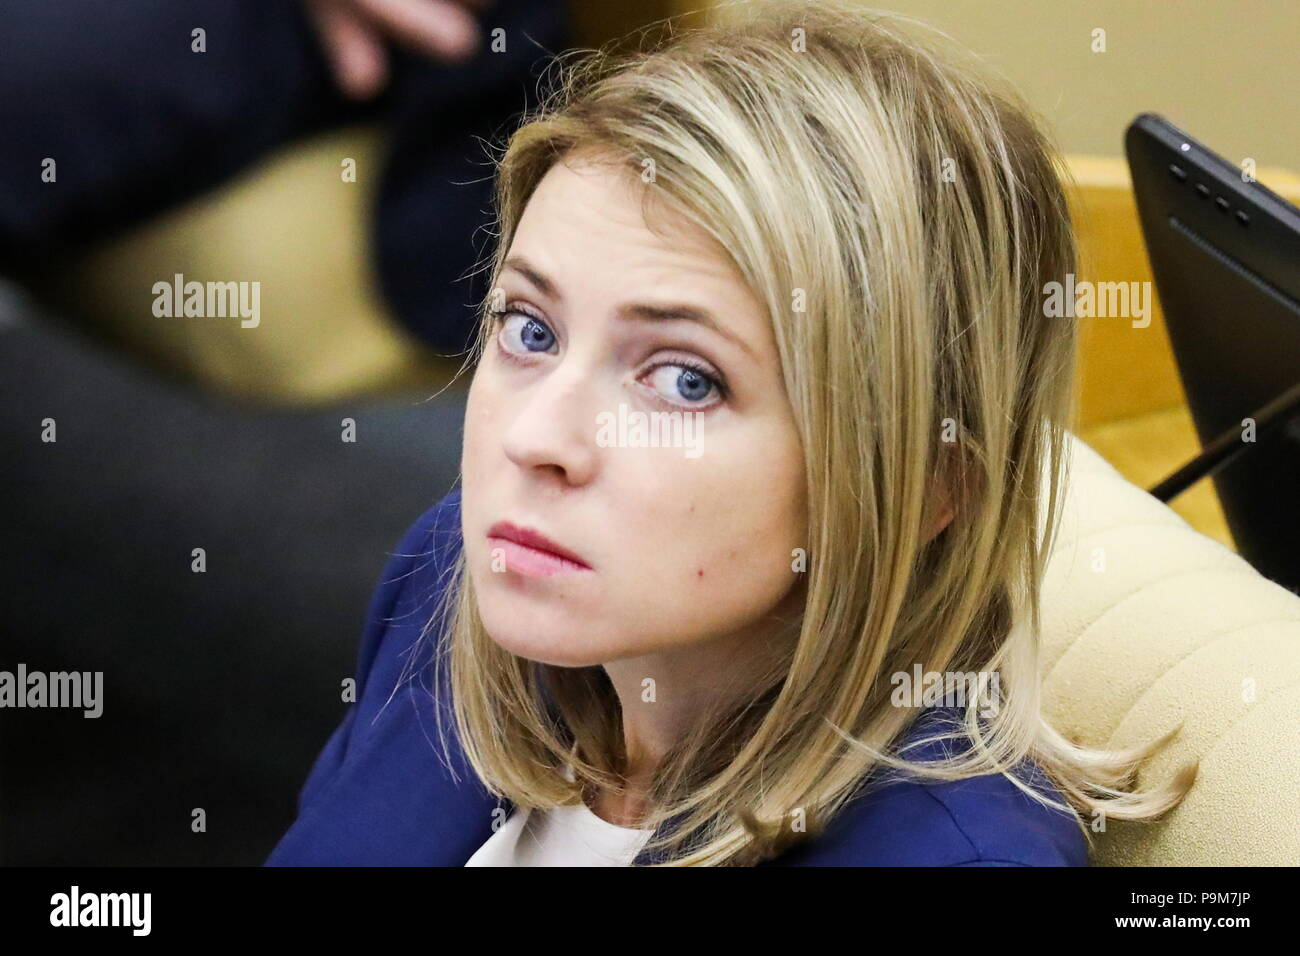 Moscow, Russia. 19th July, 2018. MOSCOW, RUSSIA - JULY 19, 2018: State Duma member Natalia Poklonskaya a plenary session of the Russian State Duma holding the first reading of a draft law to raise the retirement age for men from 60 to 65 and for women from 55 to 63. Anton Novoderezhkin/TASS Credit: ITAR-TASS News Agency/Alamy Live News - Stock Image